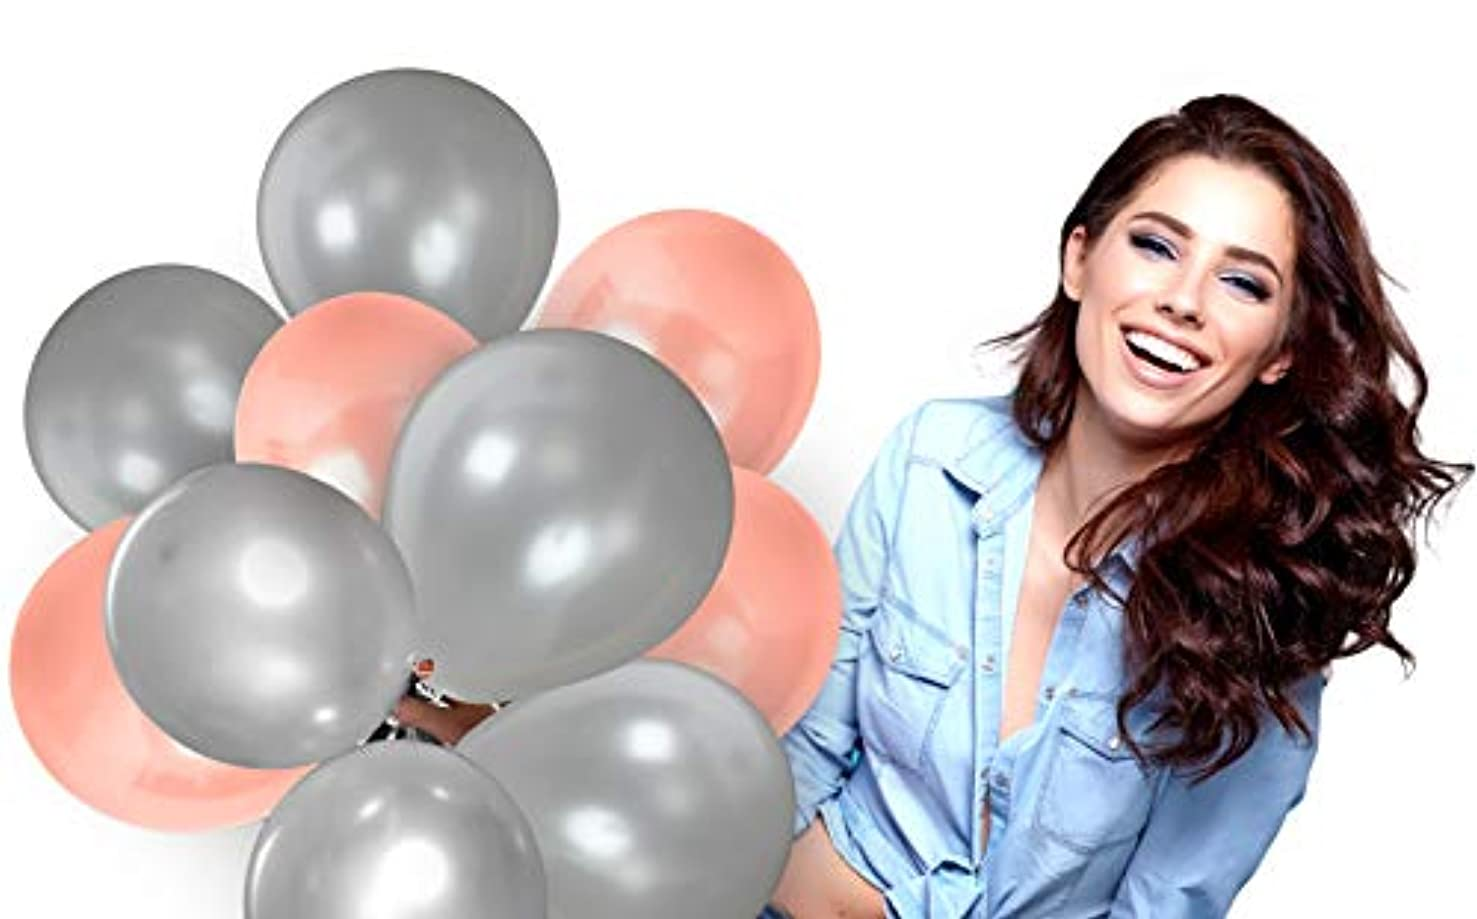 Treasures Gifted Rose Gold and Silver Metallic Balloons Kit for Valentine's Day Birthday Wedding Graduation Bridal Shower Party Decorations